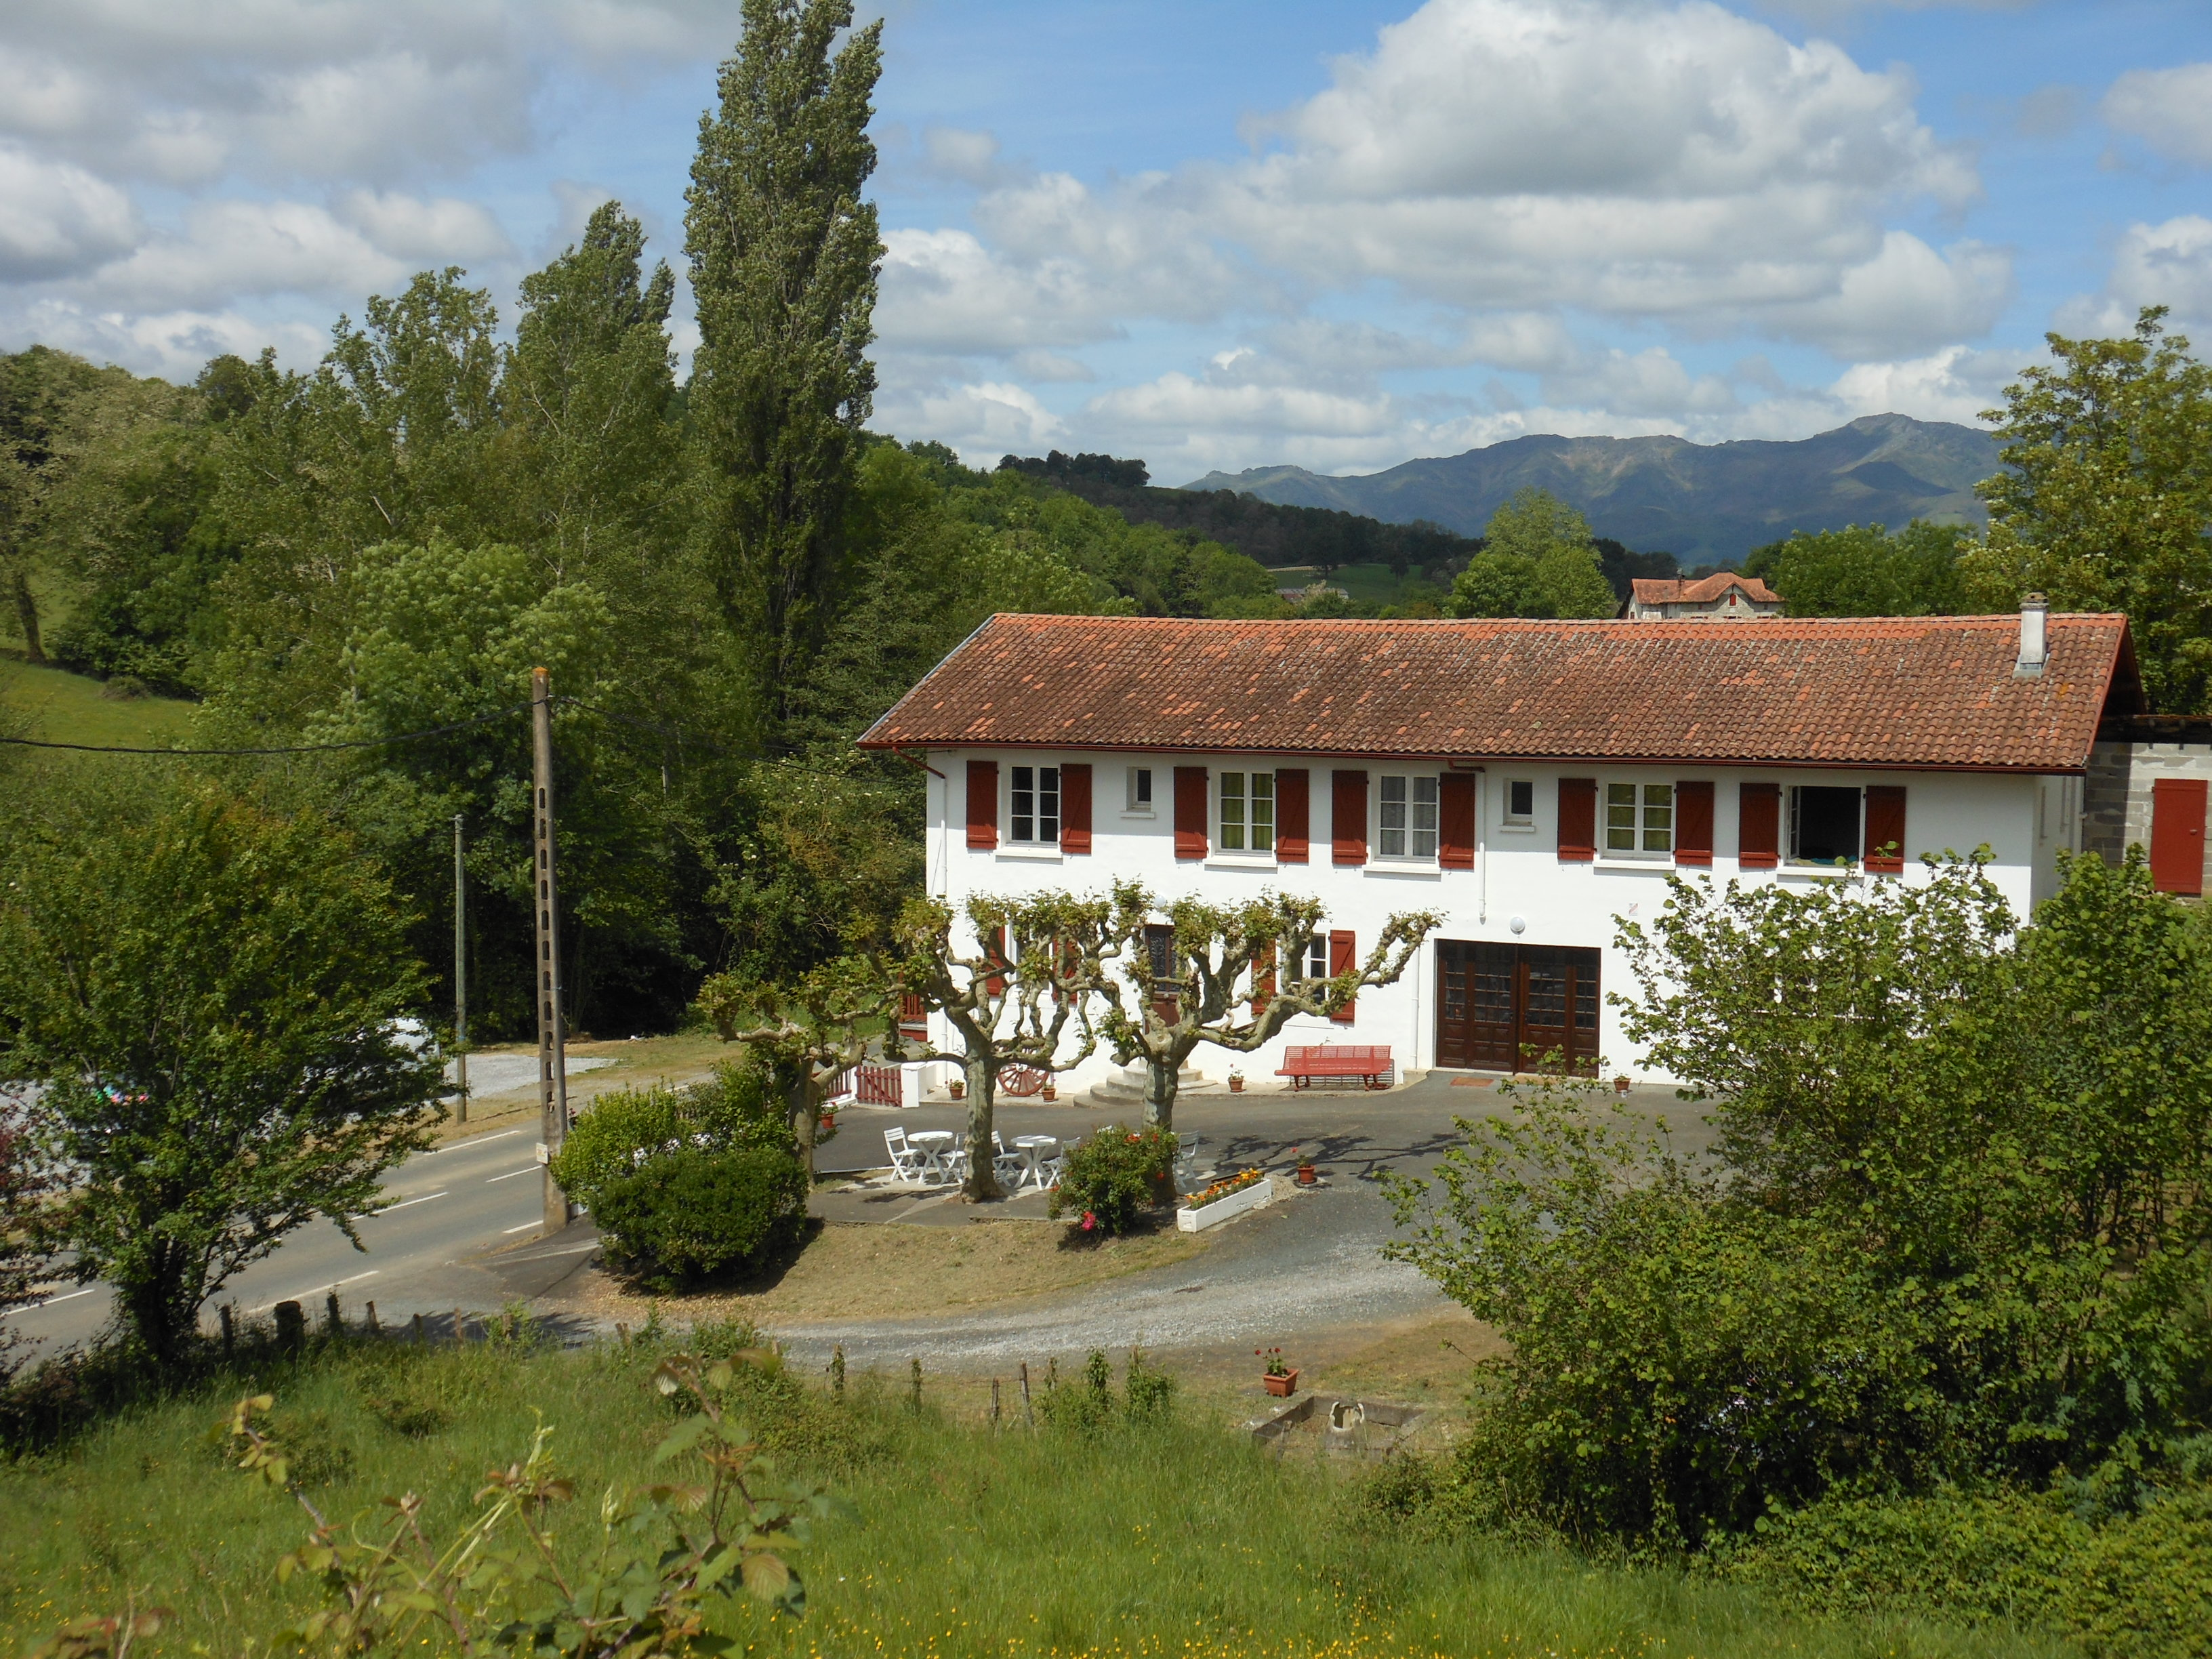 Restaurant les sapins saint jeoire - Places to stay in st jean pied de port ...